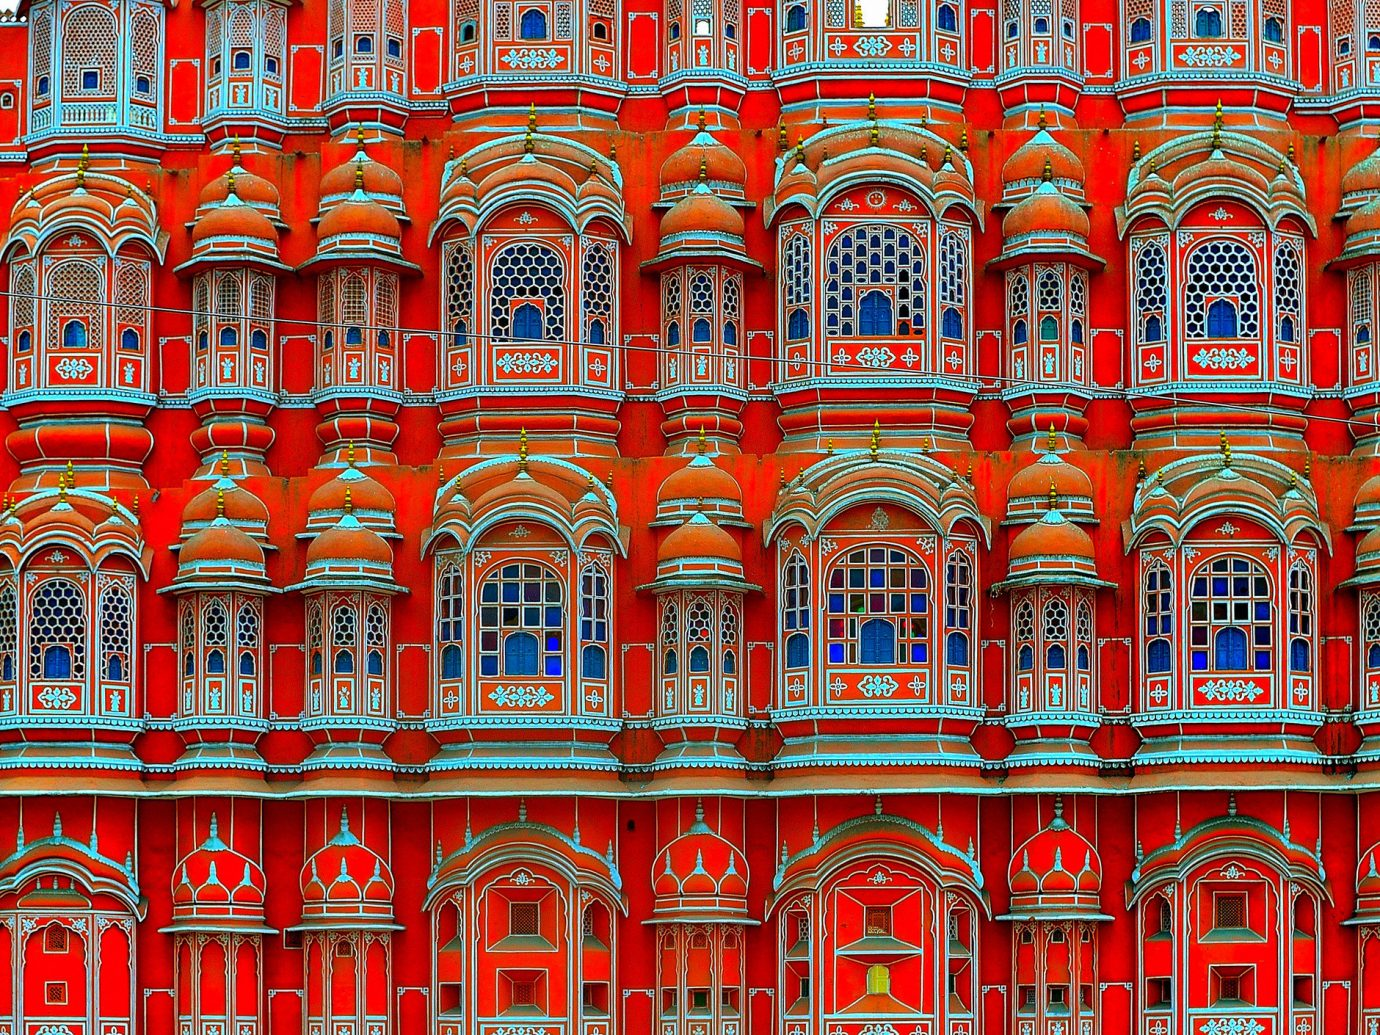 Travel Tips Trip Ideas red facade pattern Design window symmetry metropolis palace